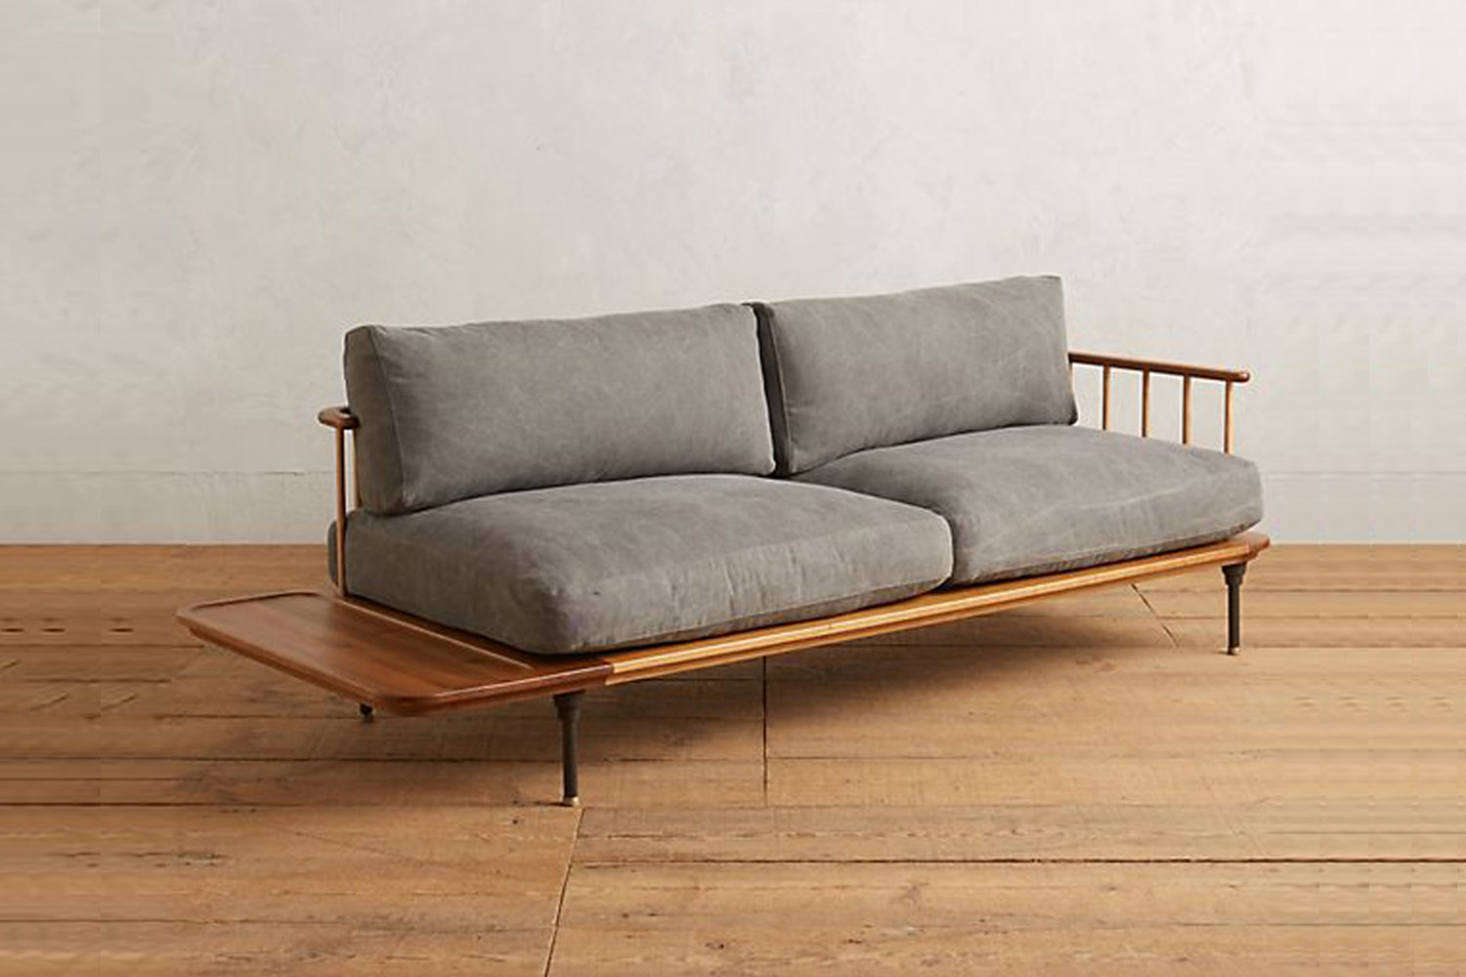 The Kalmar Sofa Is Made Of Smoked Oak, Ash, And Steel And Has Waxed